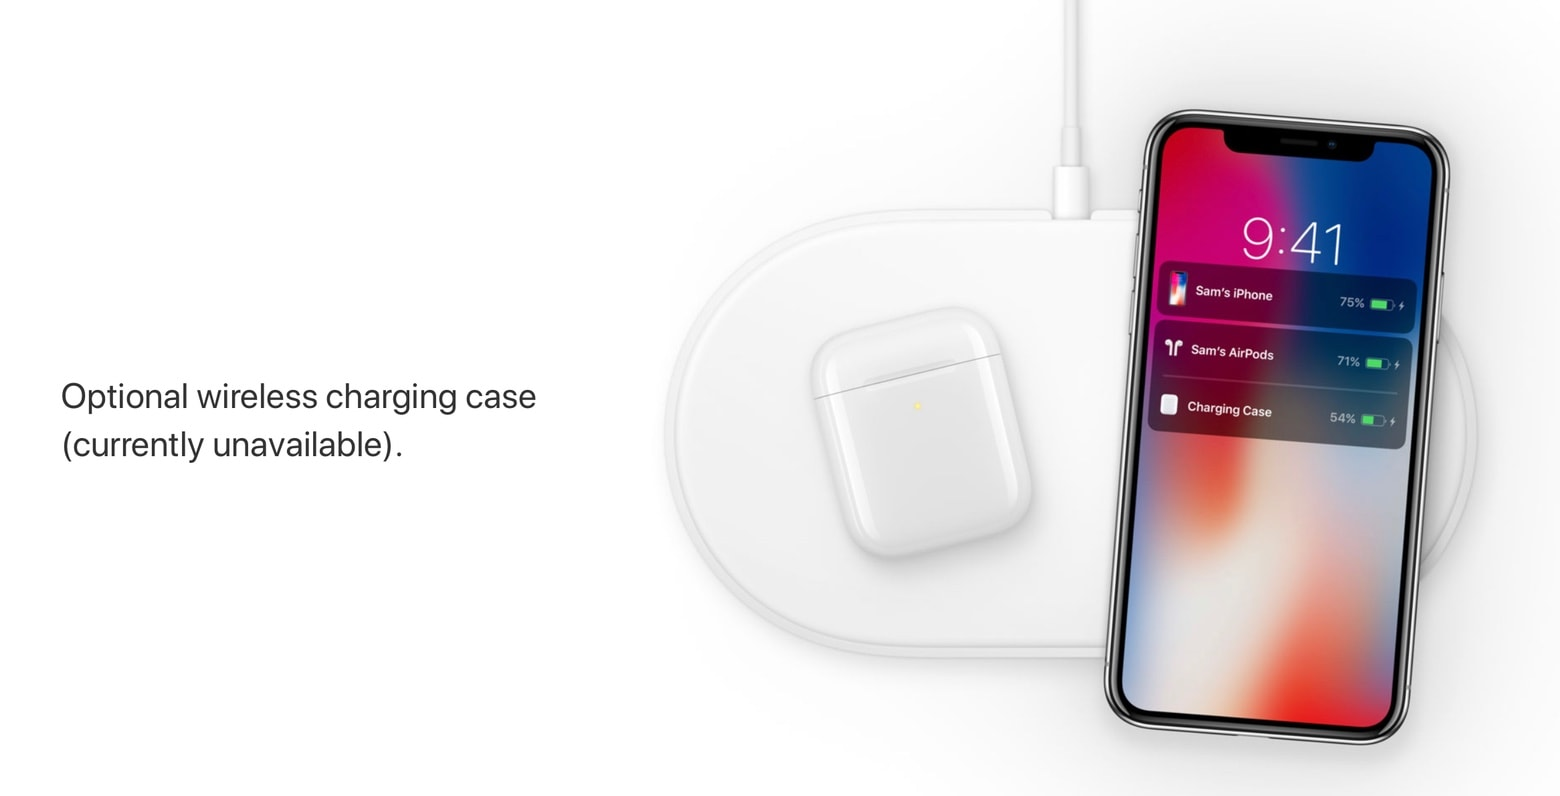 Why was this crusty old mage of AirPower removed from Apple's website?